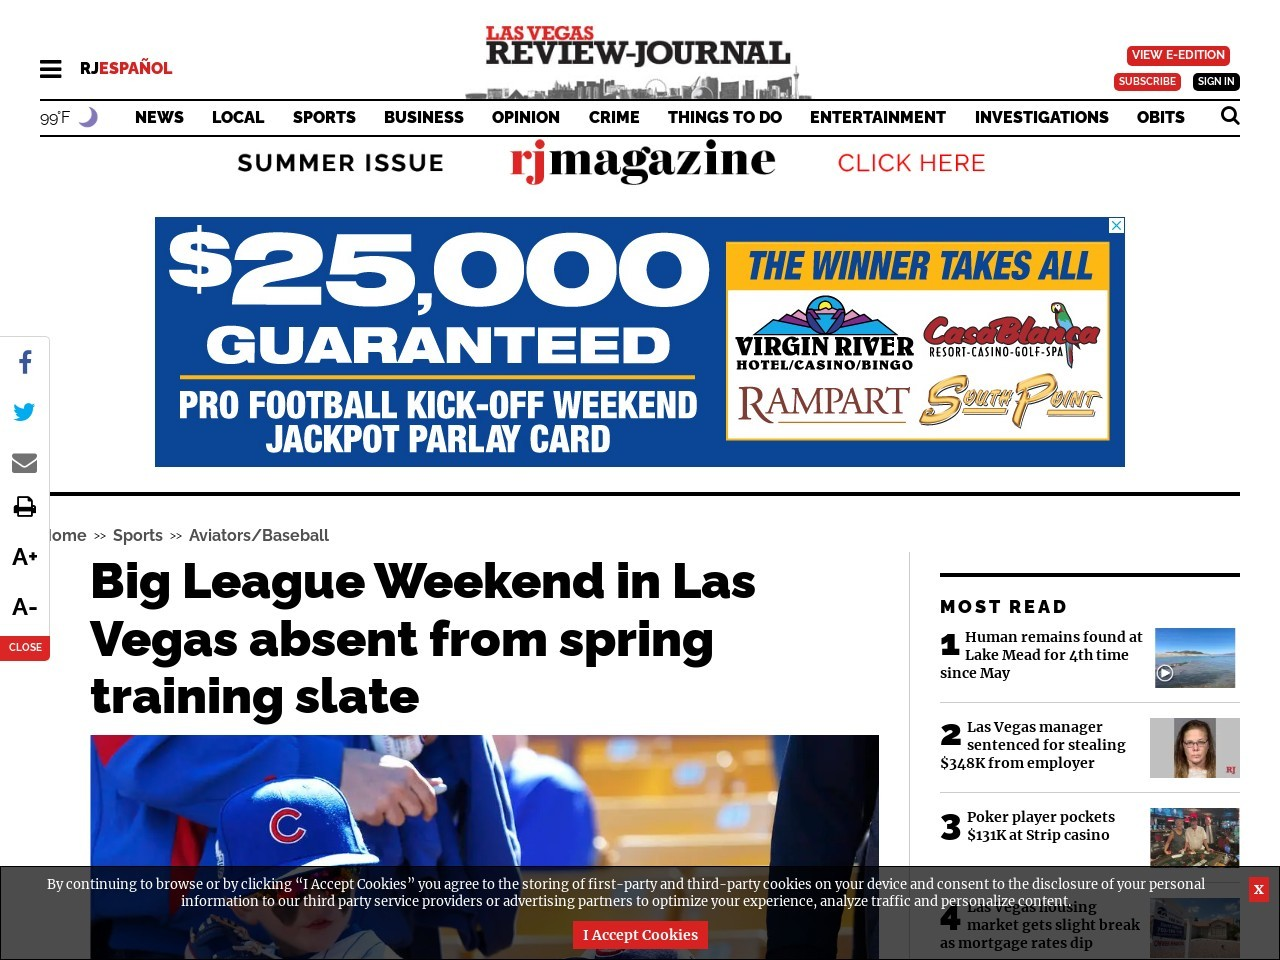 Big League Weekend in Las Vegas absent from spring training slate